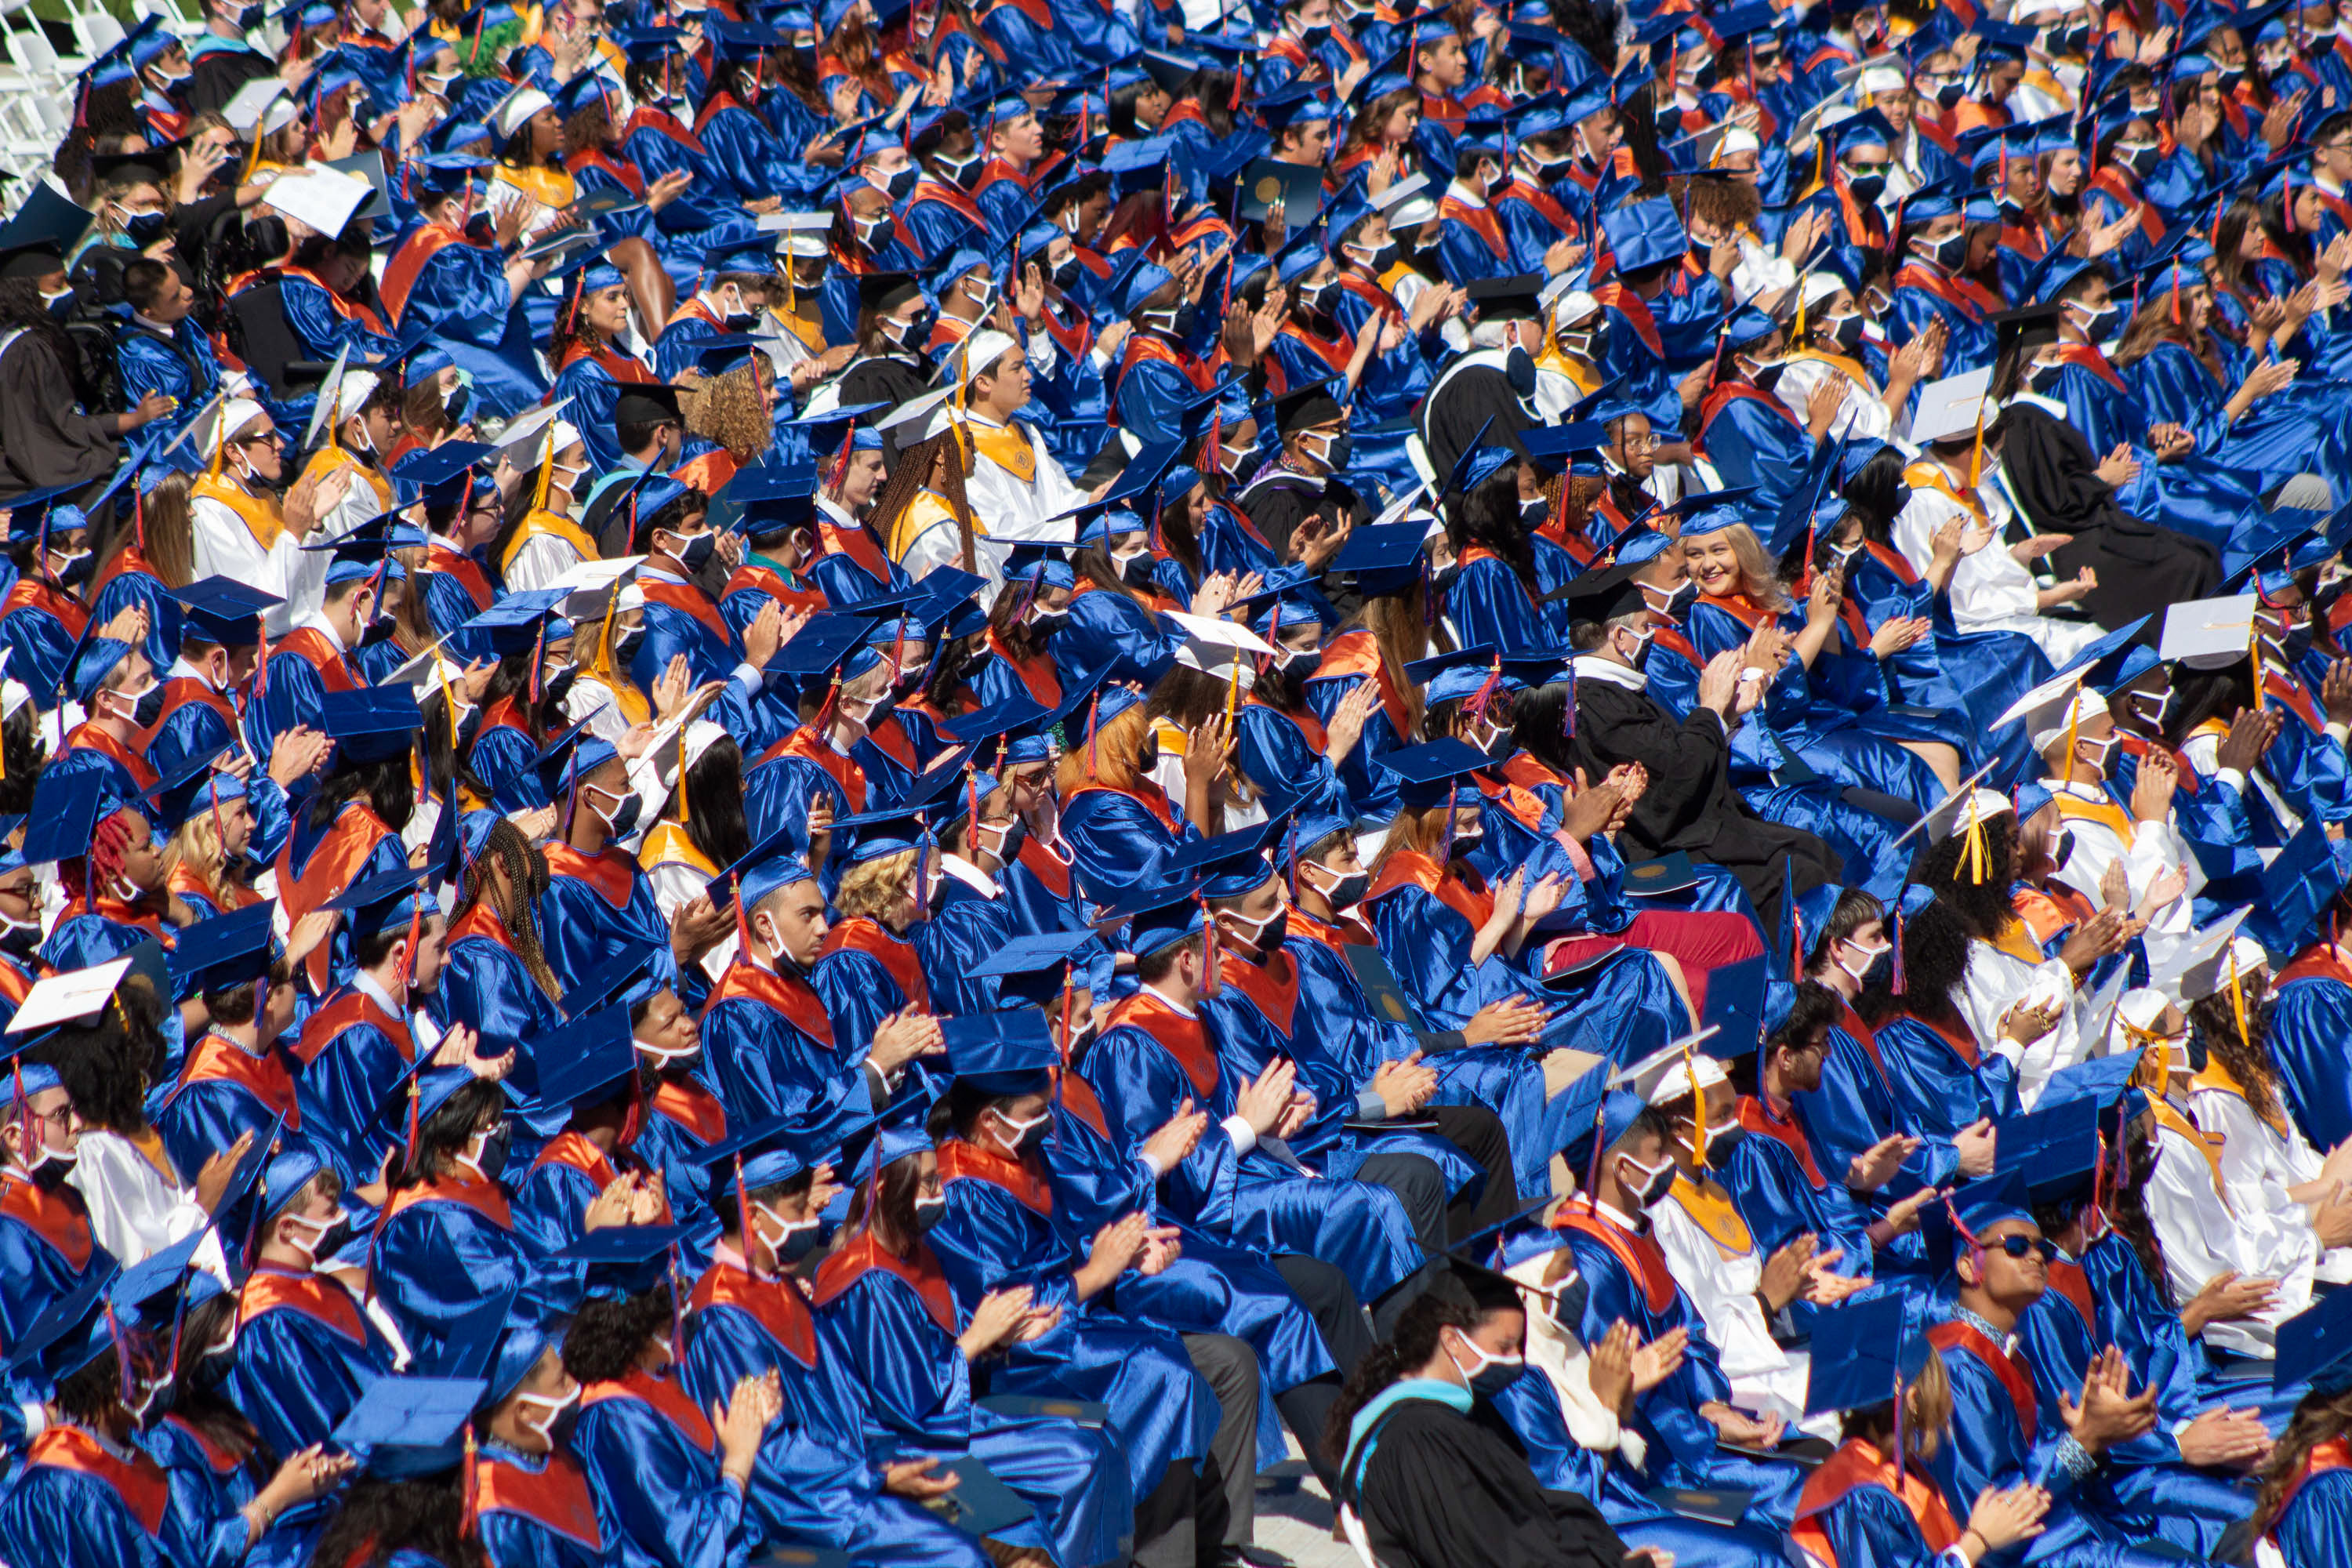 Rows of upcoming graduates applaud during a speech, creating a sea of blue and orange due to the shimmering of their caps and gowns from the sunlight.